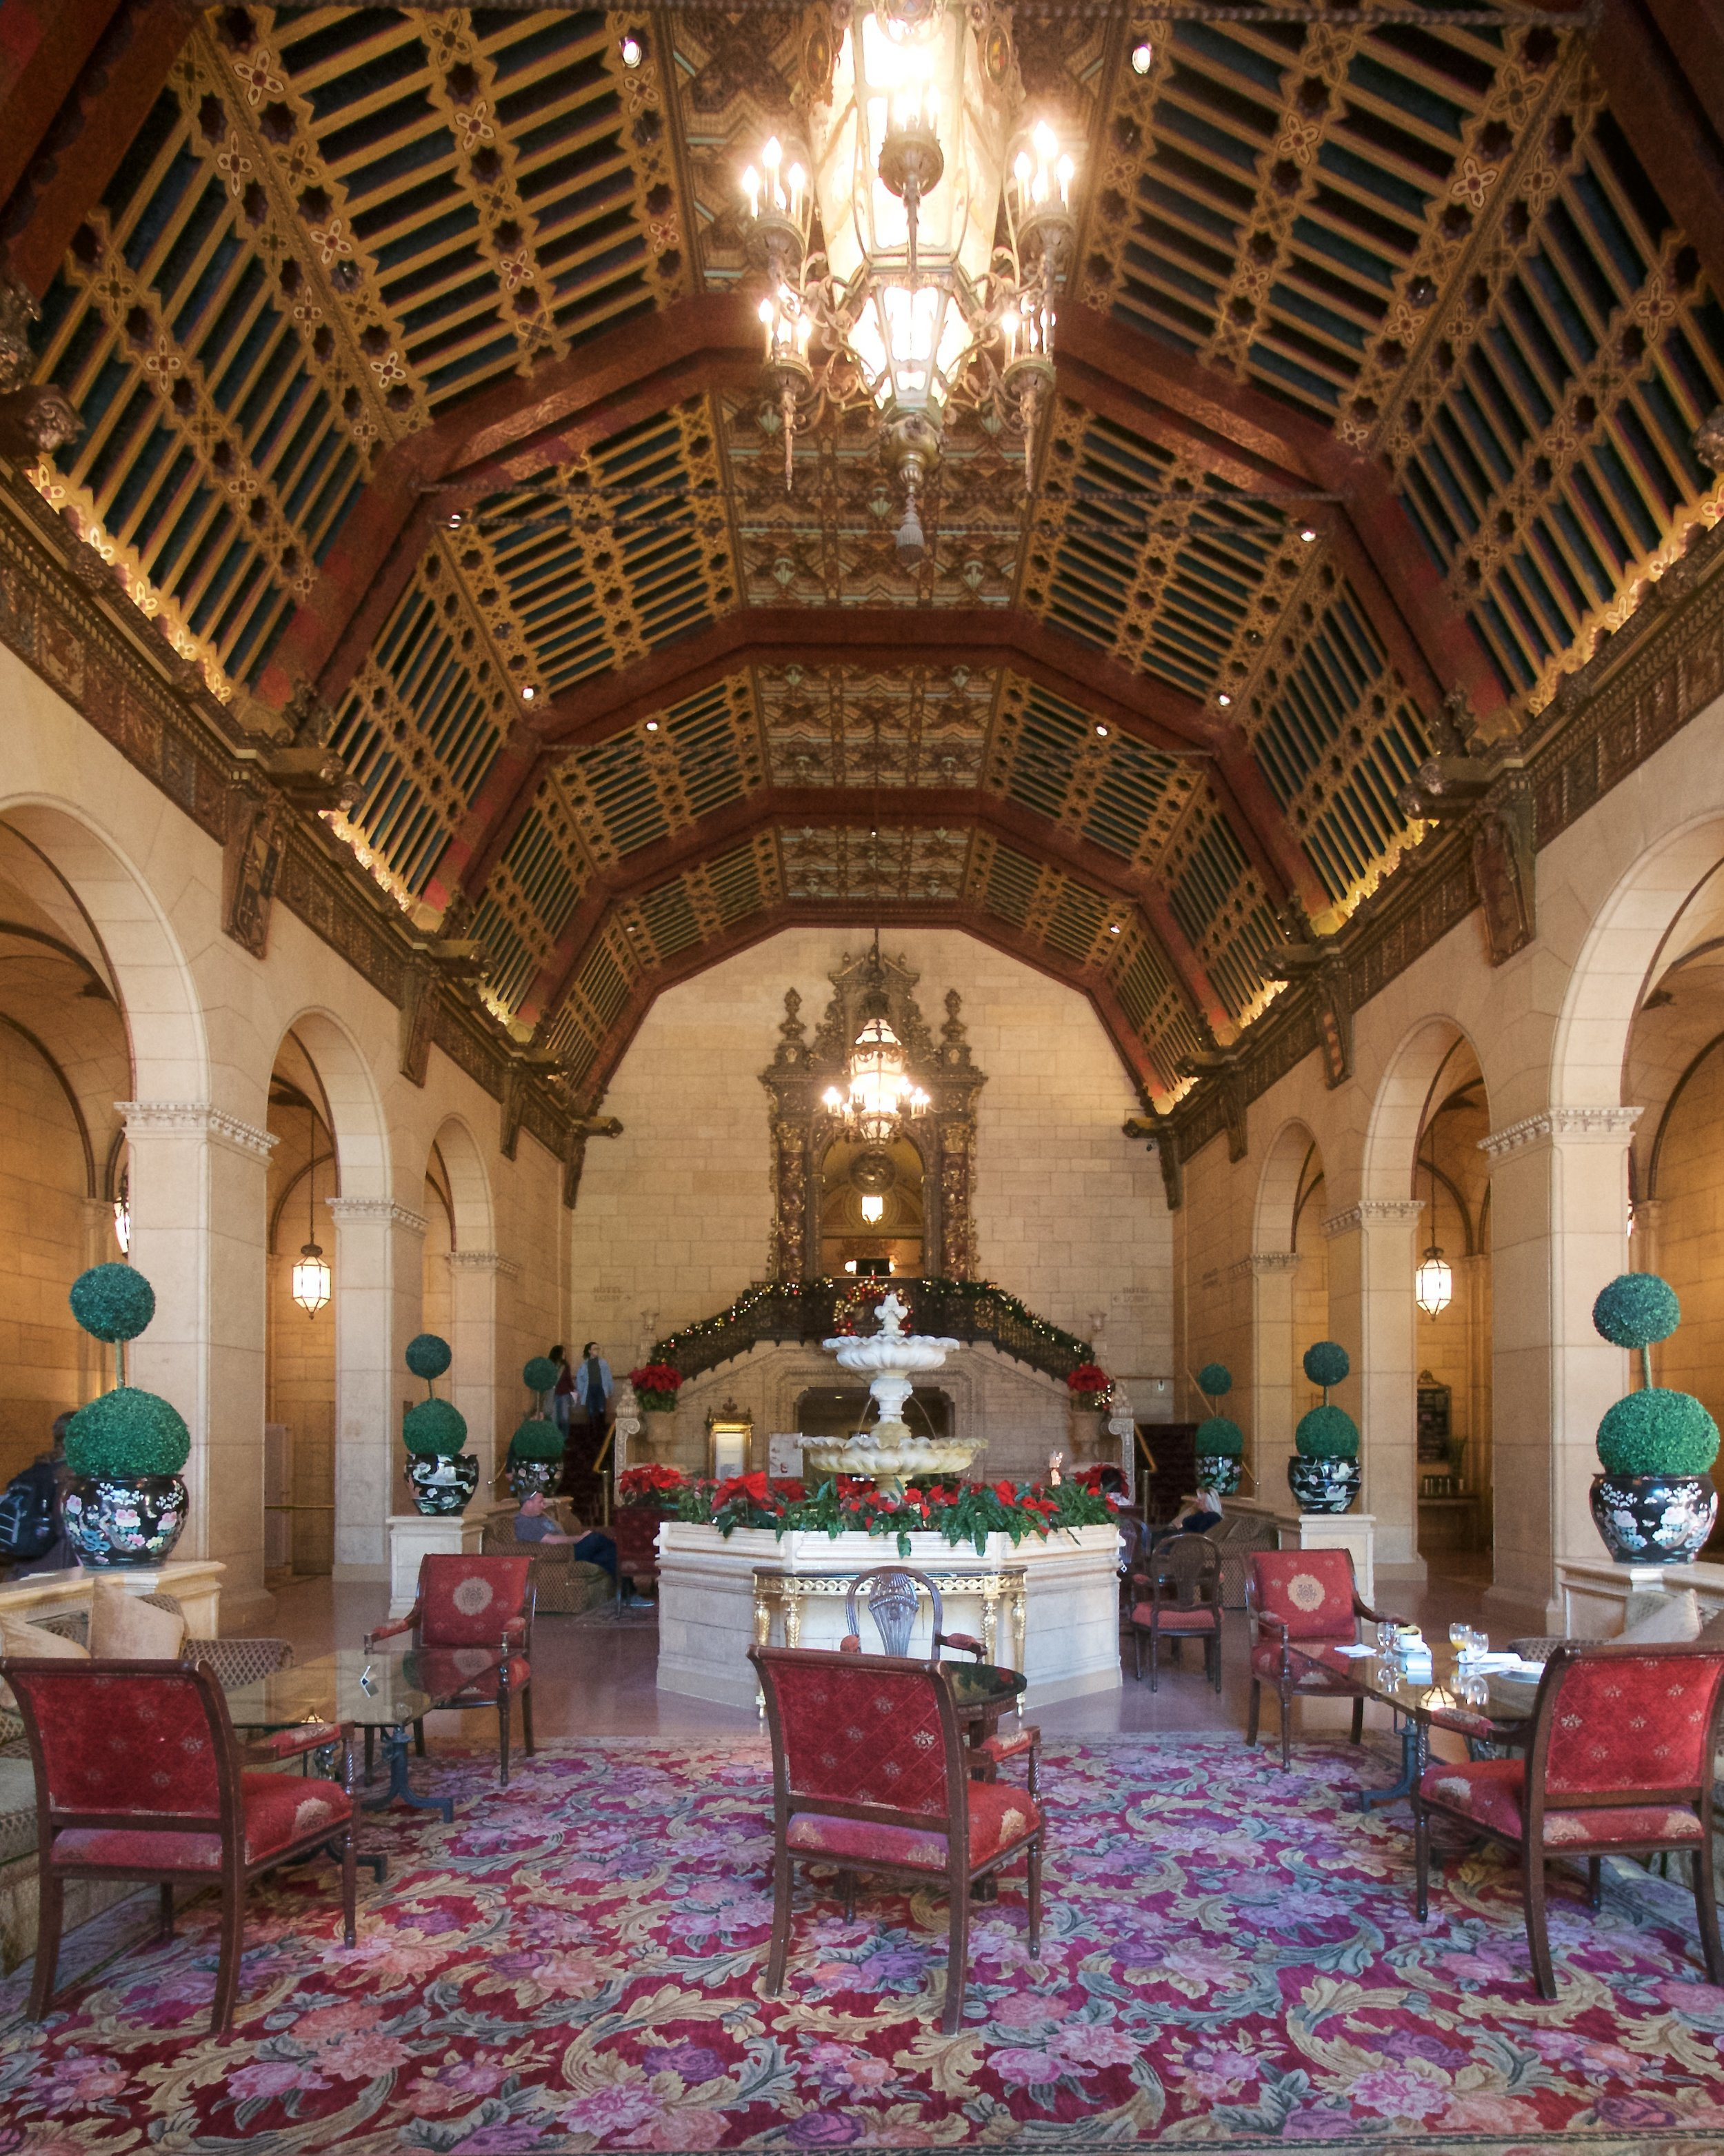 Original lobby of the Millenium Biltmore Hotel